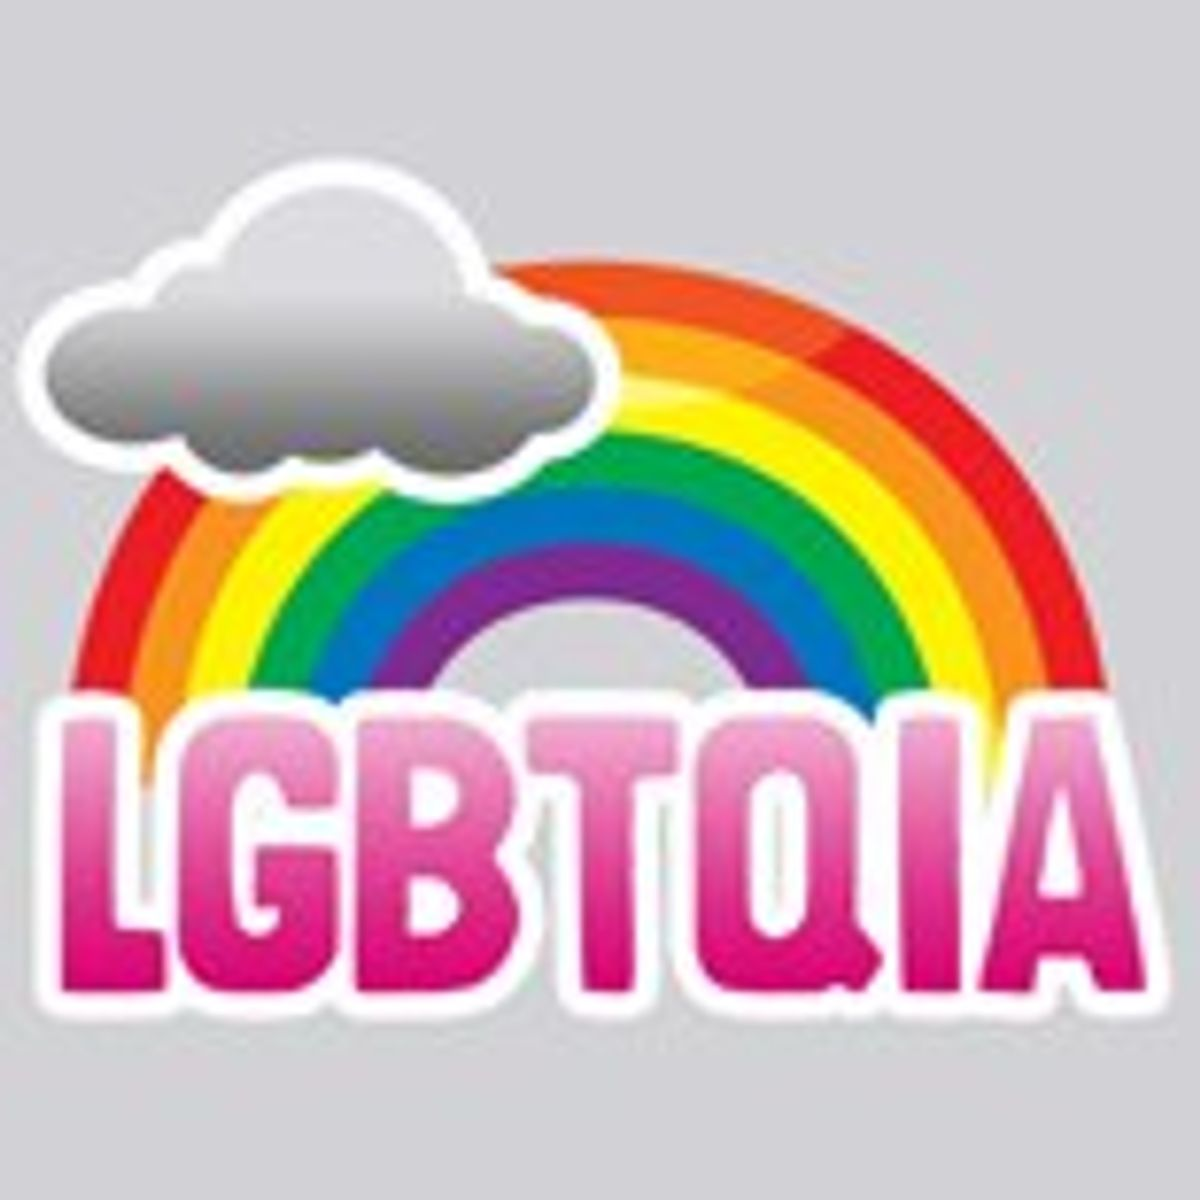 11 Things To Be Aware Of When It Comes To The LGBTQIA Community